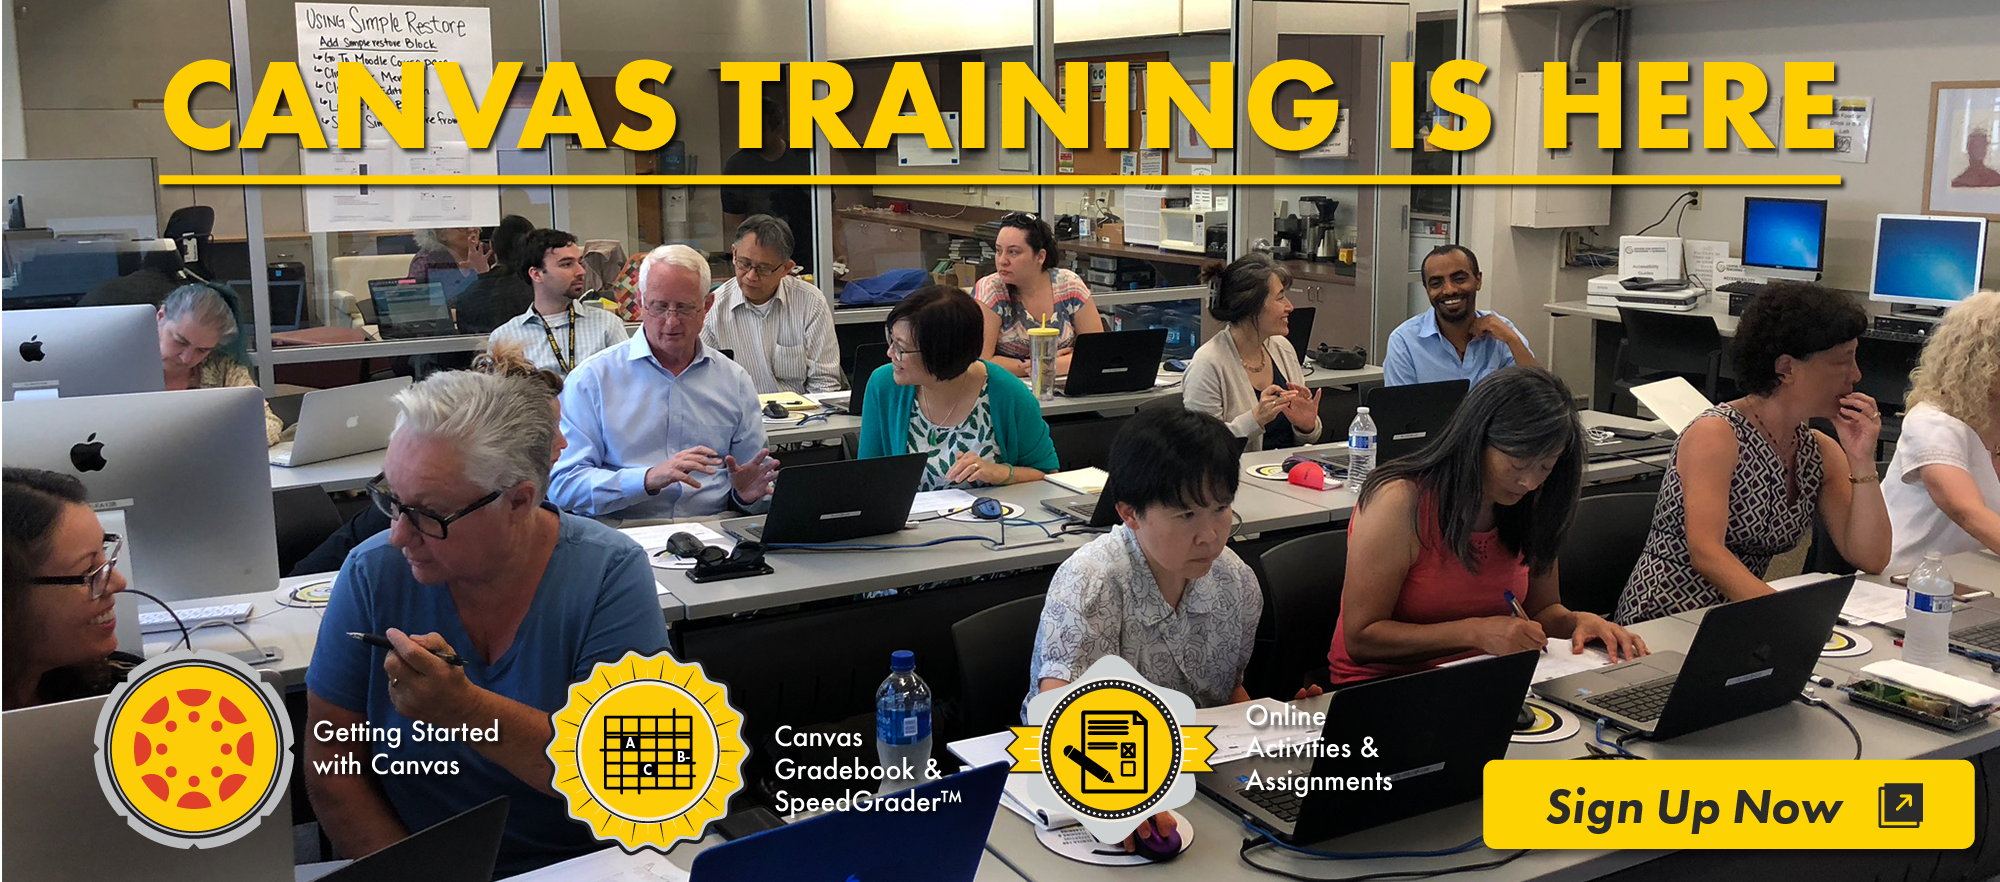 Canvas Training is here.